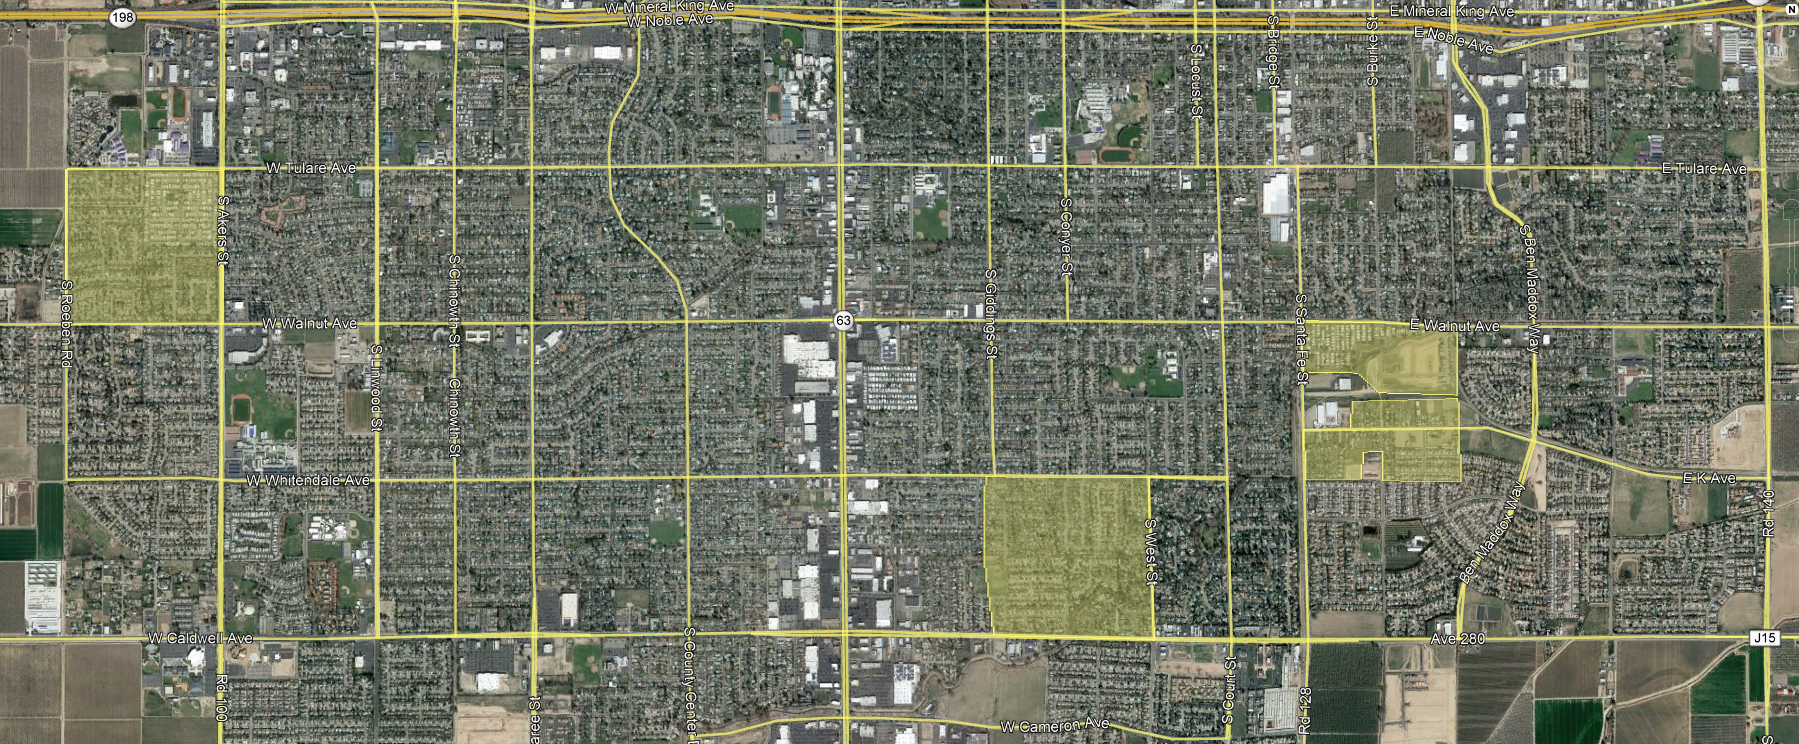 Map of treatment areas in Visalia